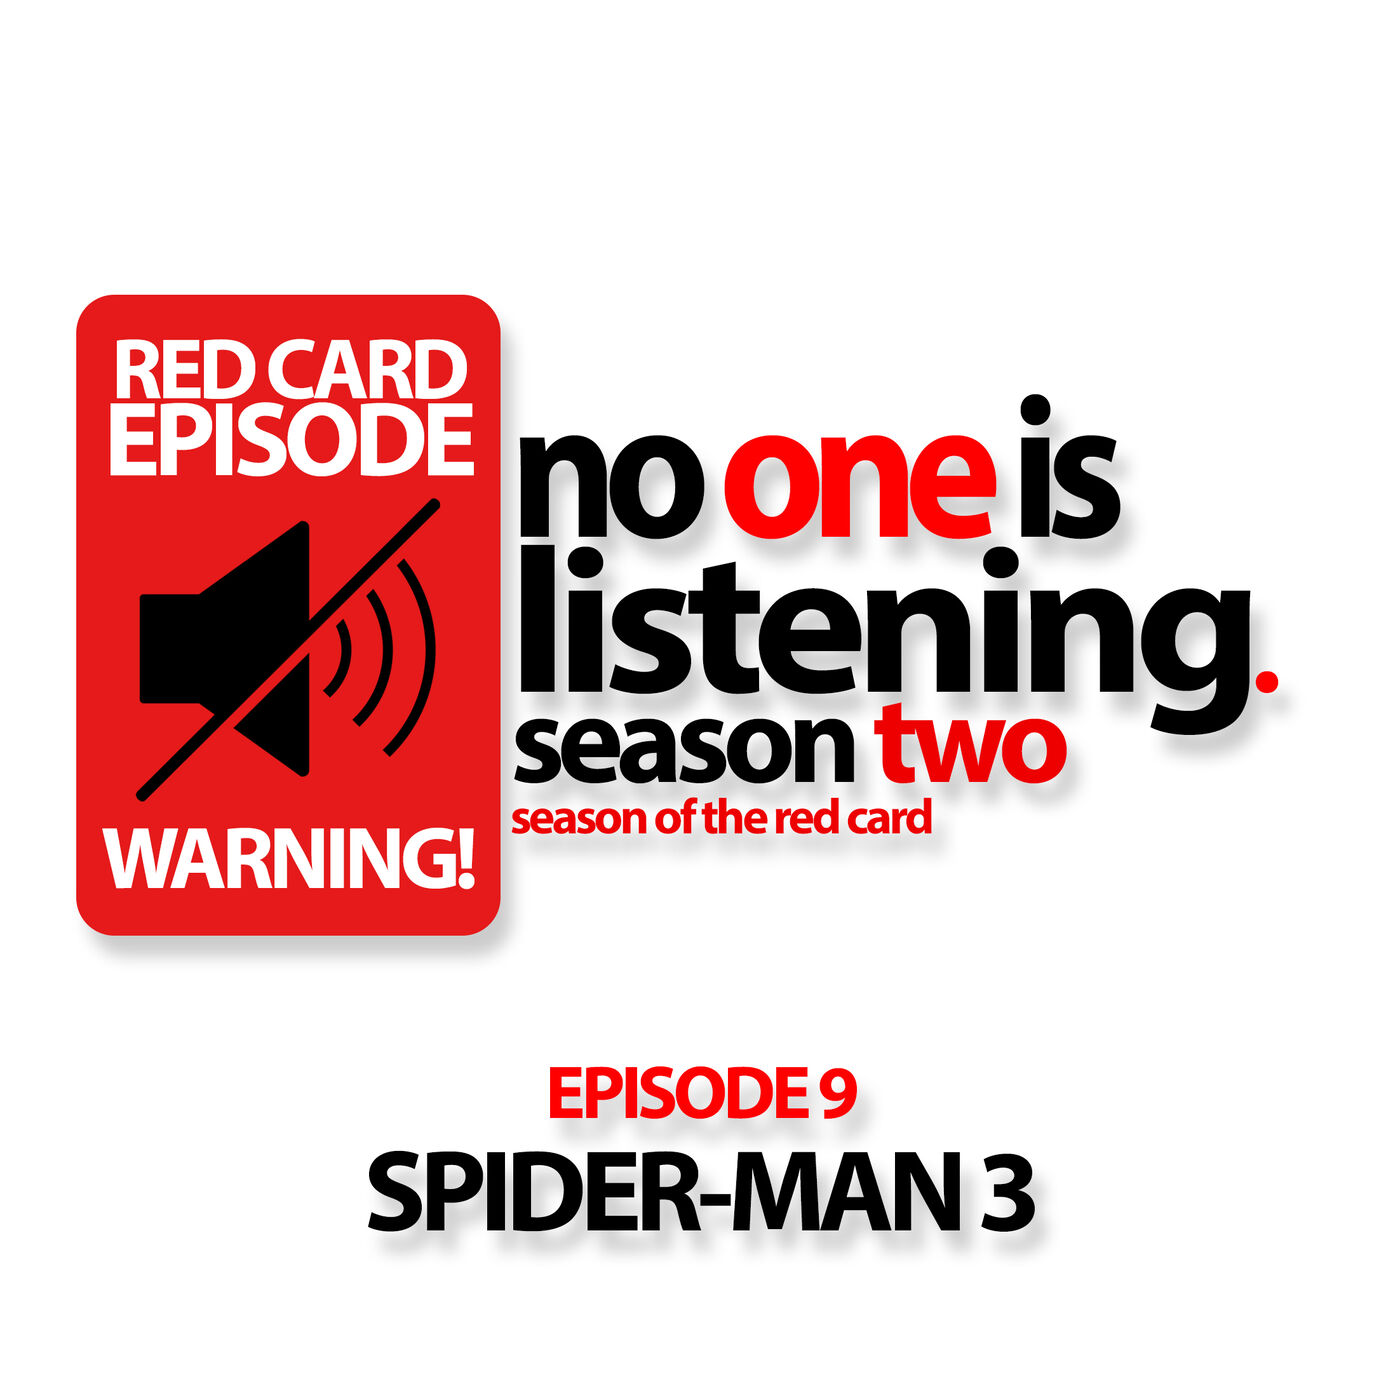 S2E9 Spider-Man 3 (Red Card)